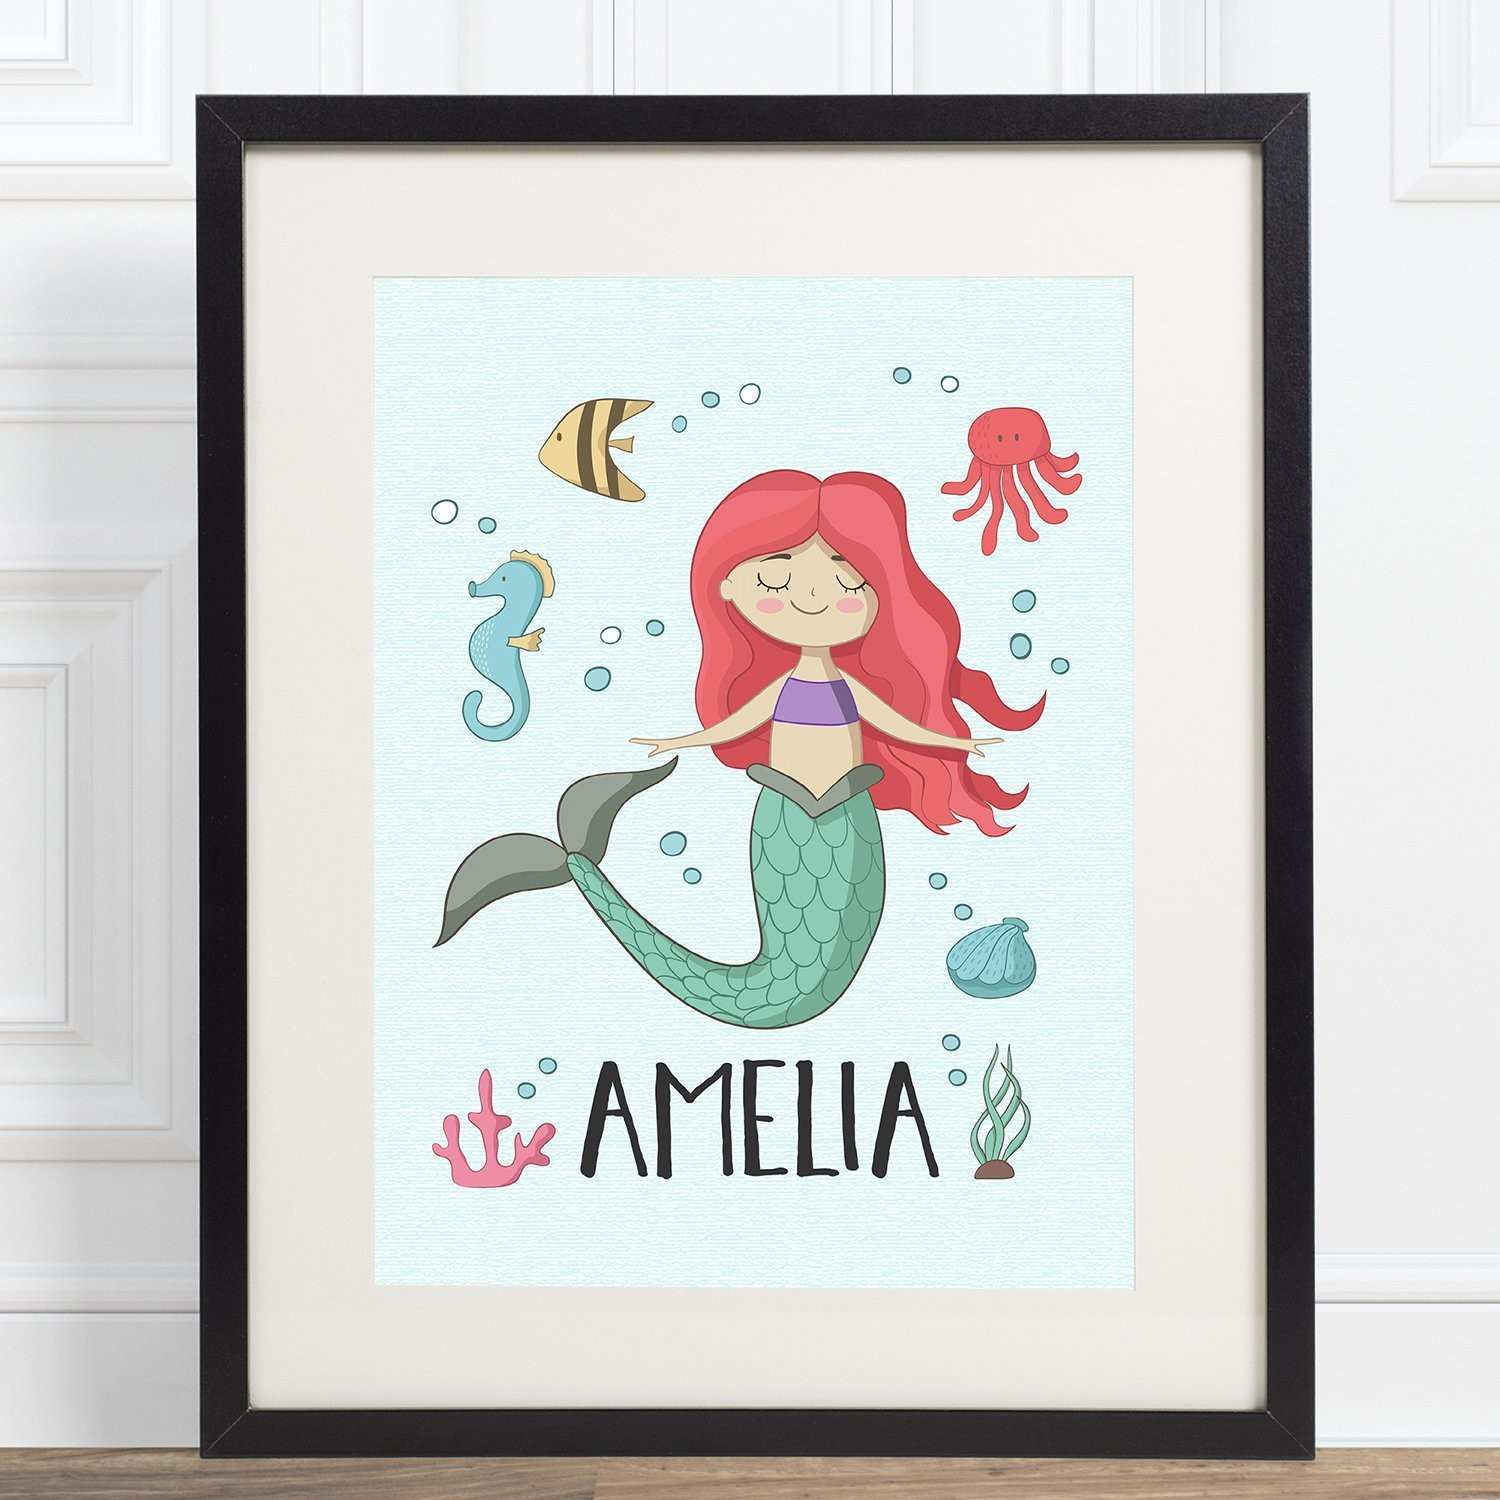 Personalized Mermaid 8x10 Poster Art Print for Kids Room Wall Decor